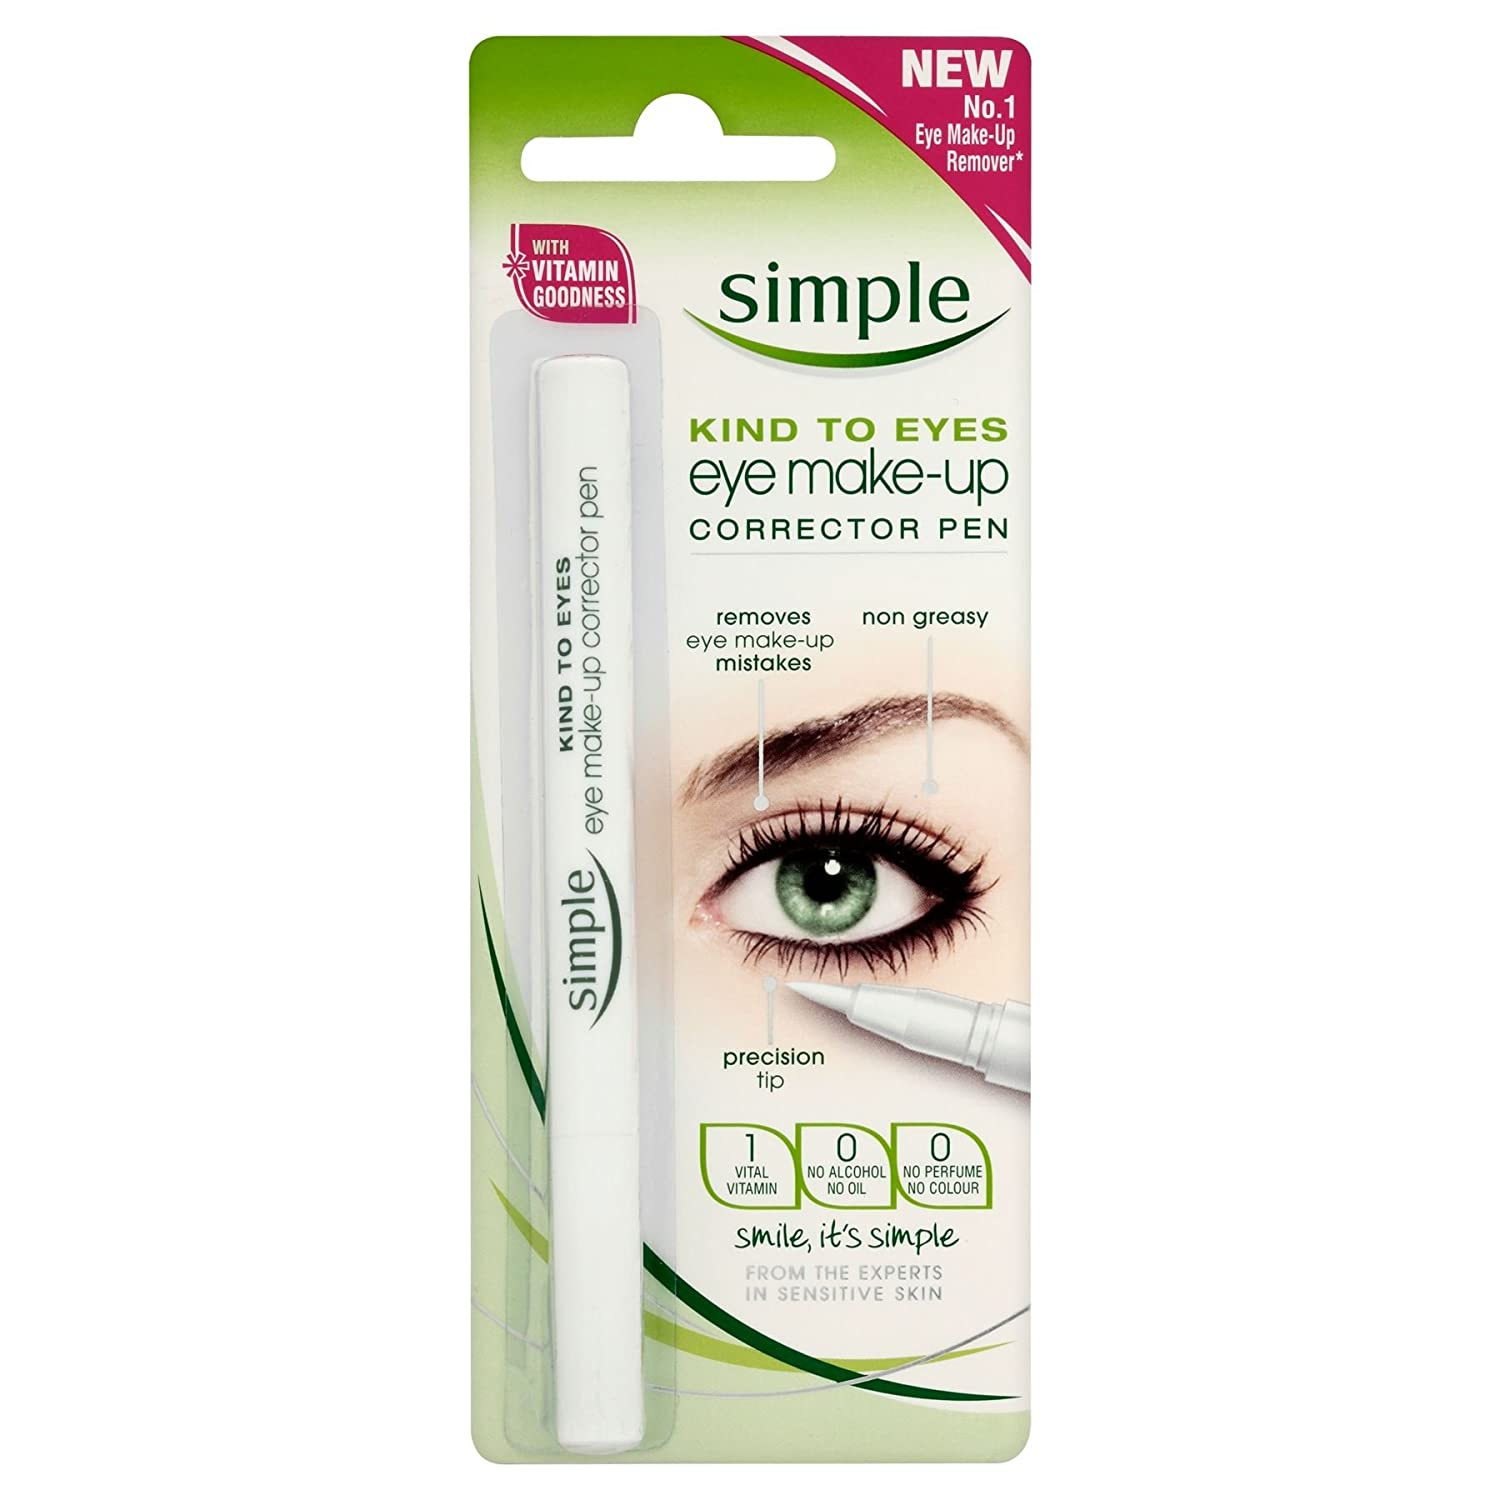 6 x Simple Kind To Eyes Eye Make-Up Corrector Pen